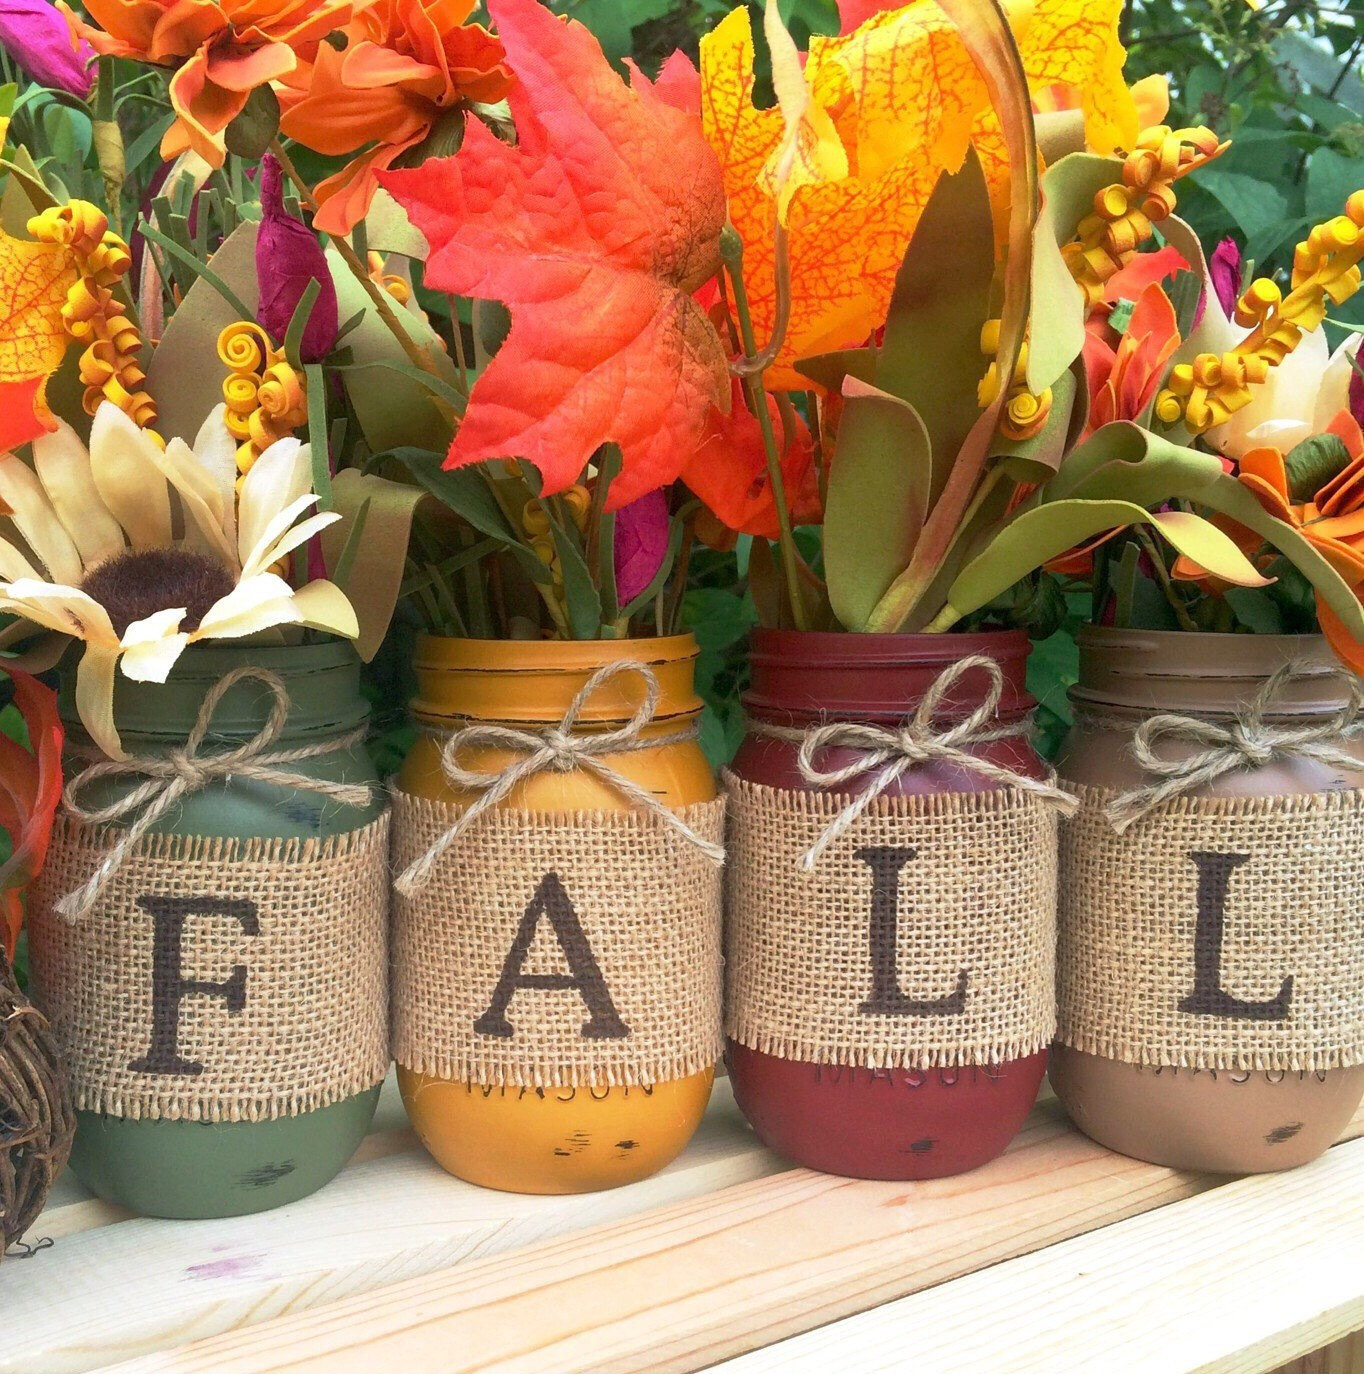 22 Simple Fall Craft Ideas And Diy Fall Decorations: 16 Charming Handmade Thanksgiving Centerpiece Ideas That